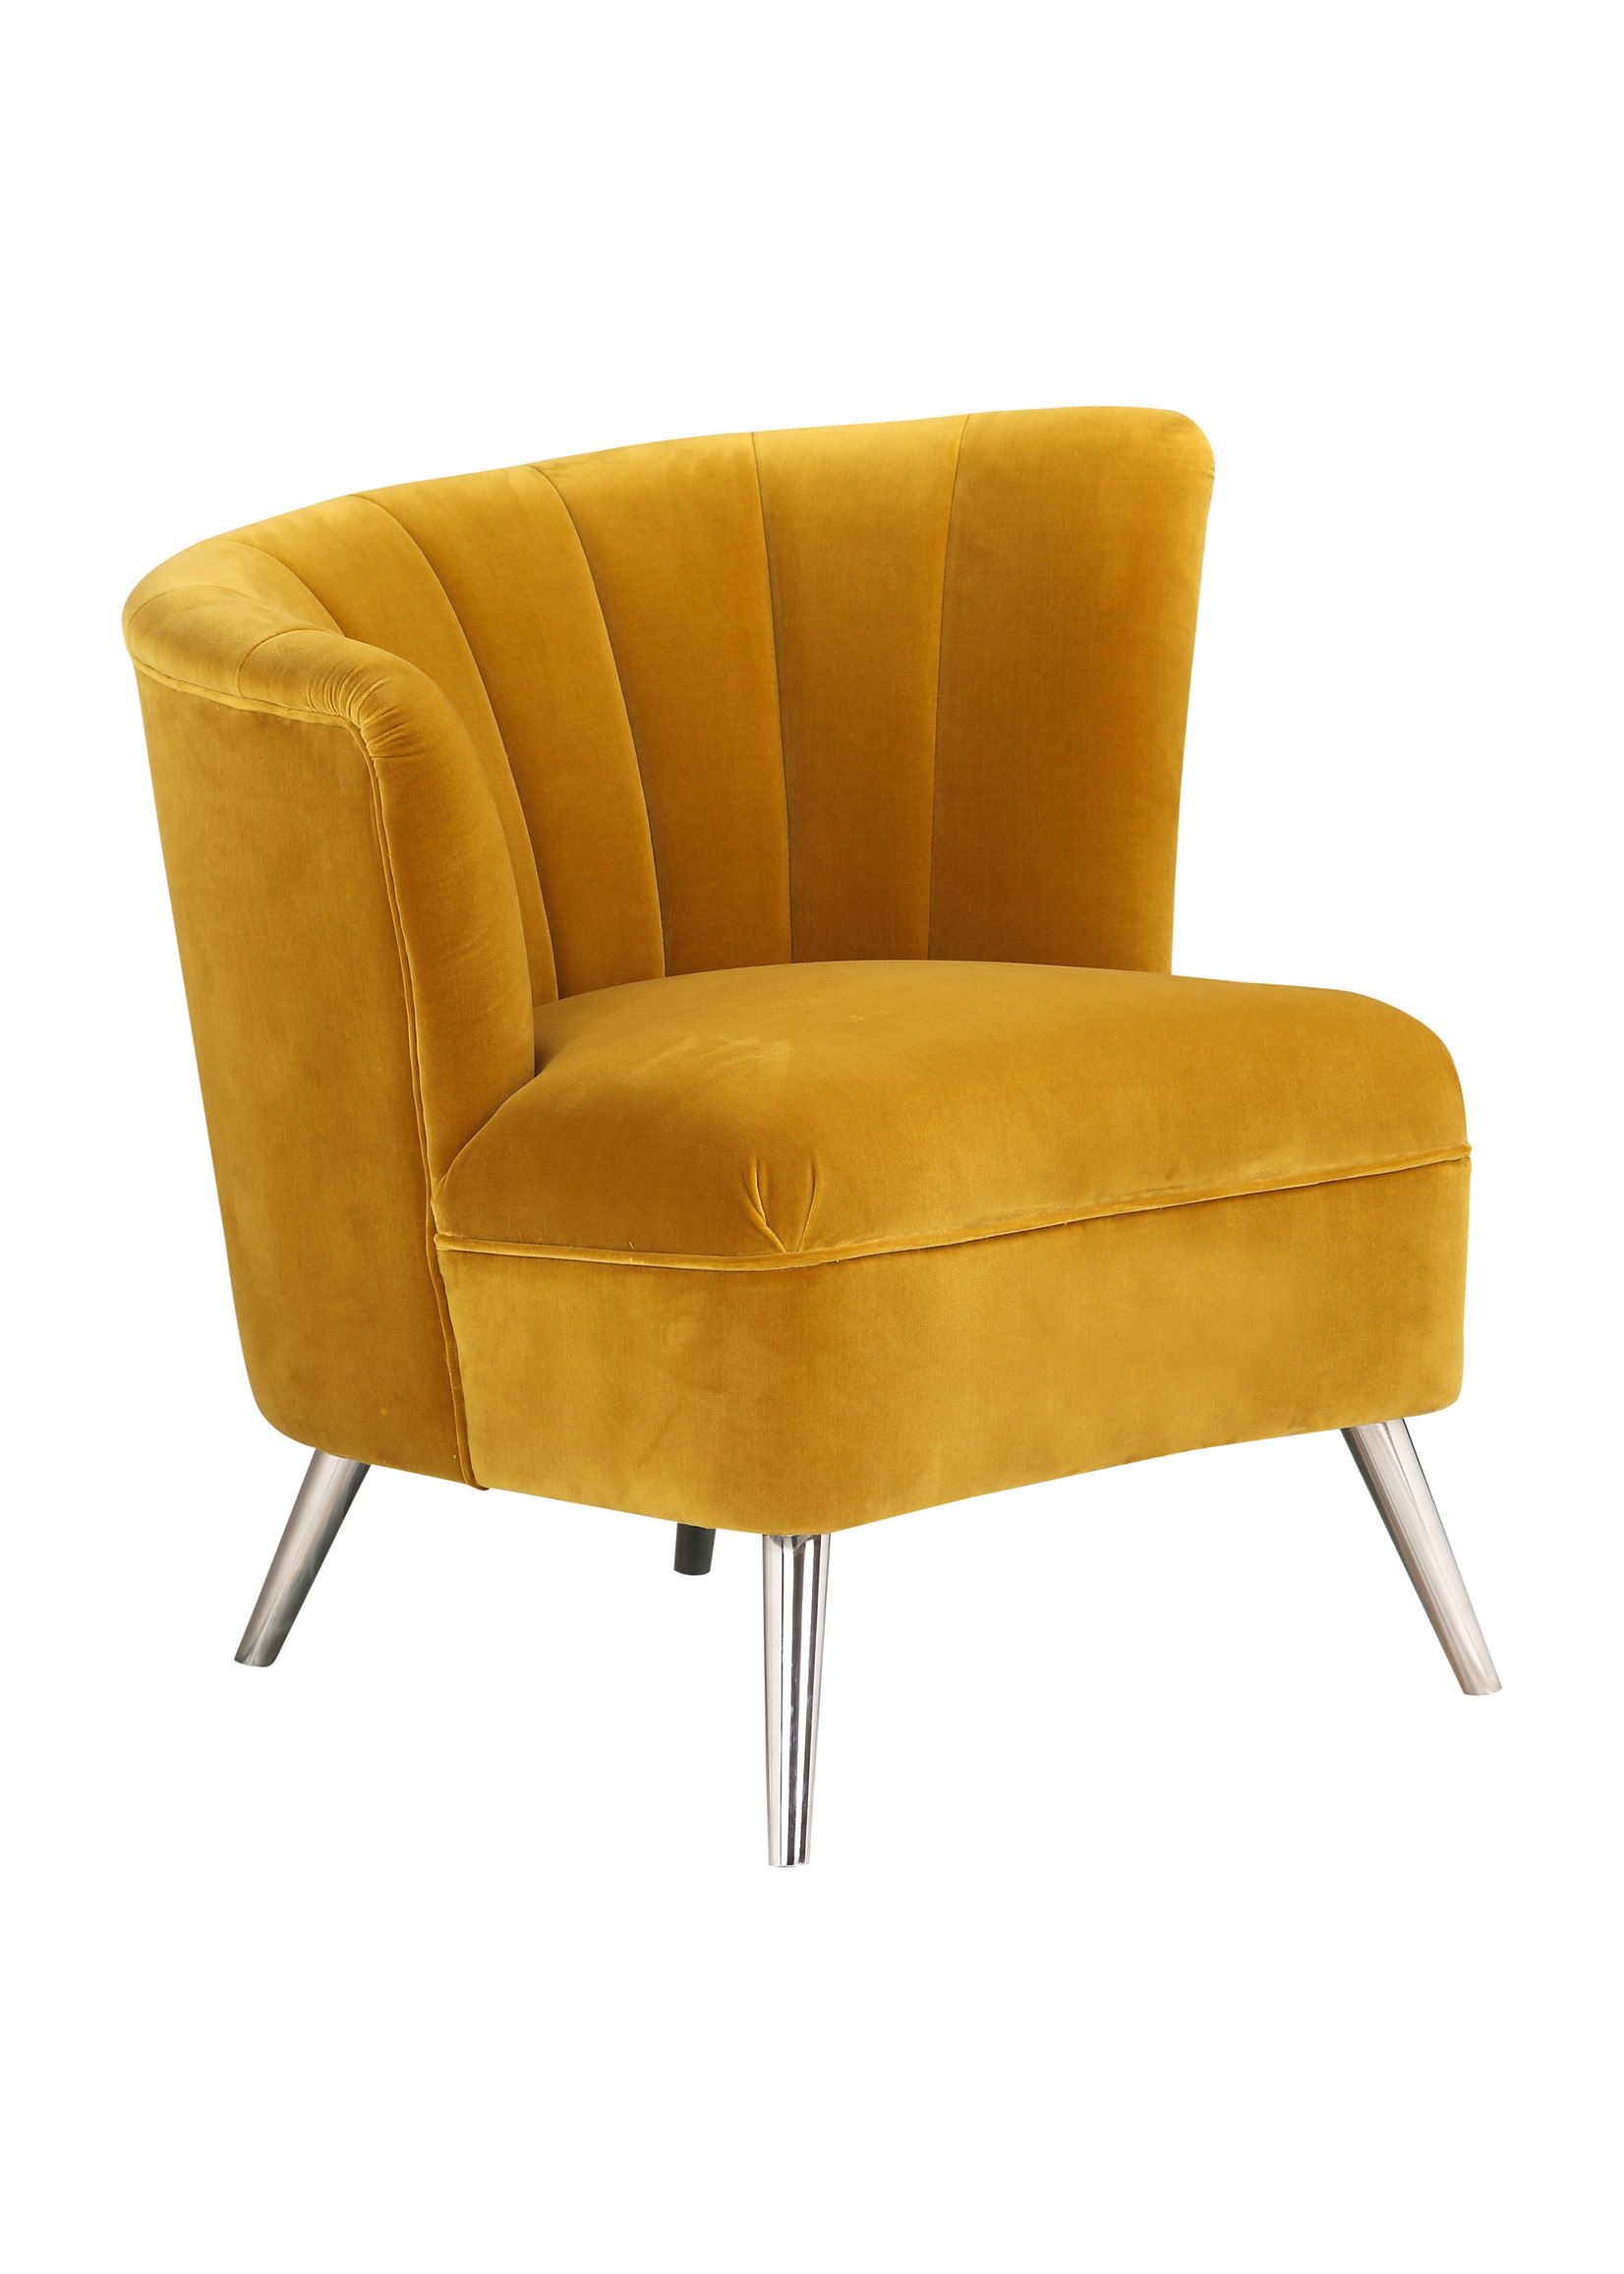 Moes Home Collection Layan Accent Chair Left Yellow by MOES